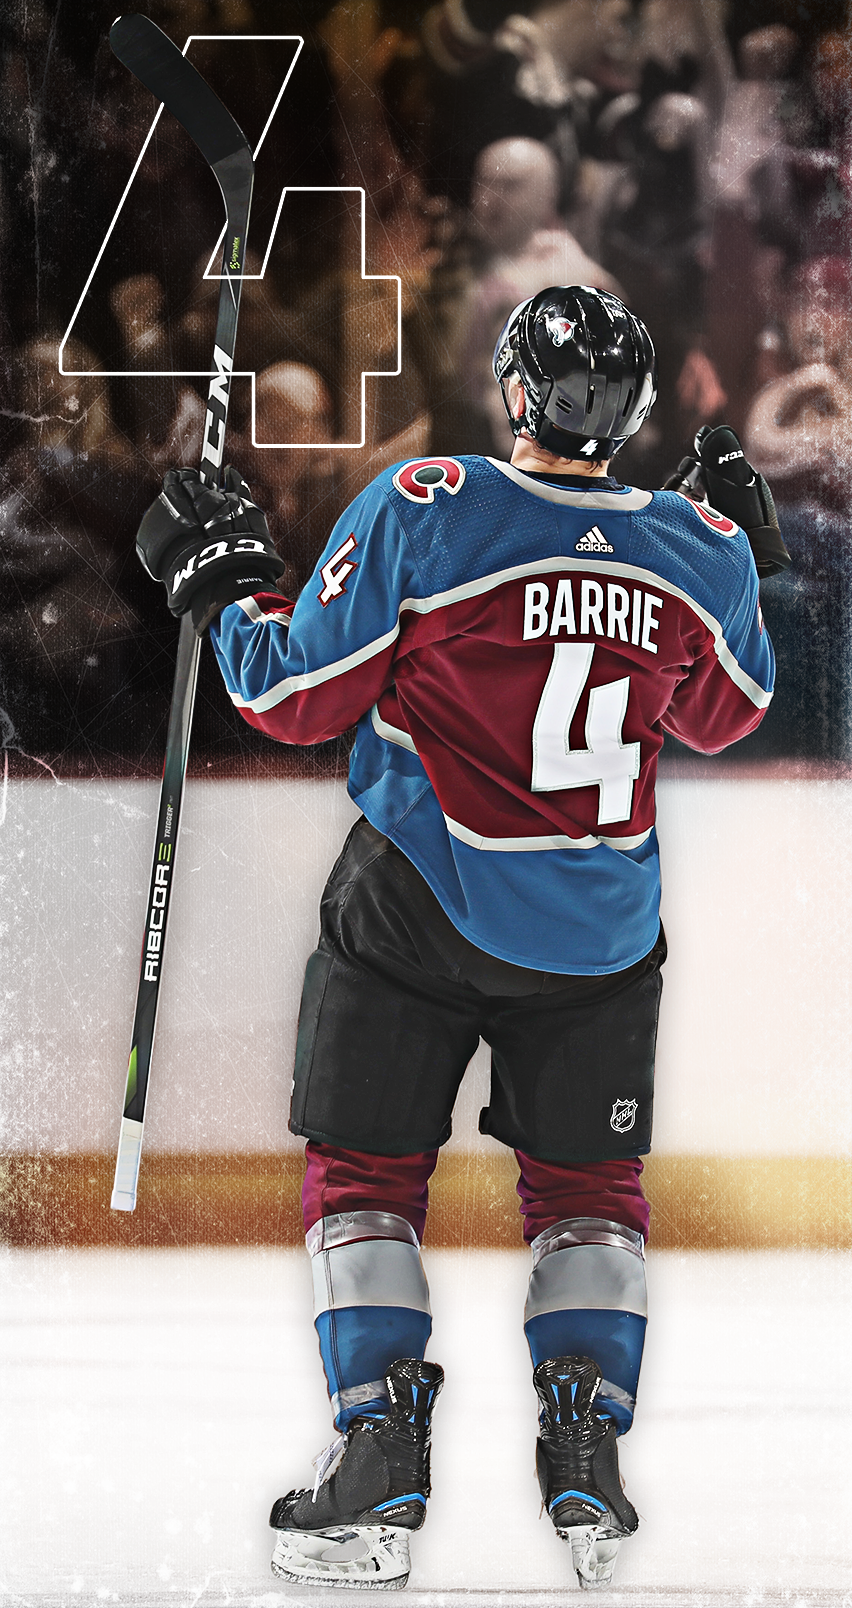 852x1608 - Colorado Avalanche Wallpapers 7